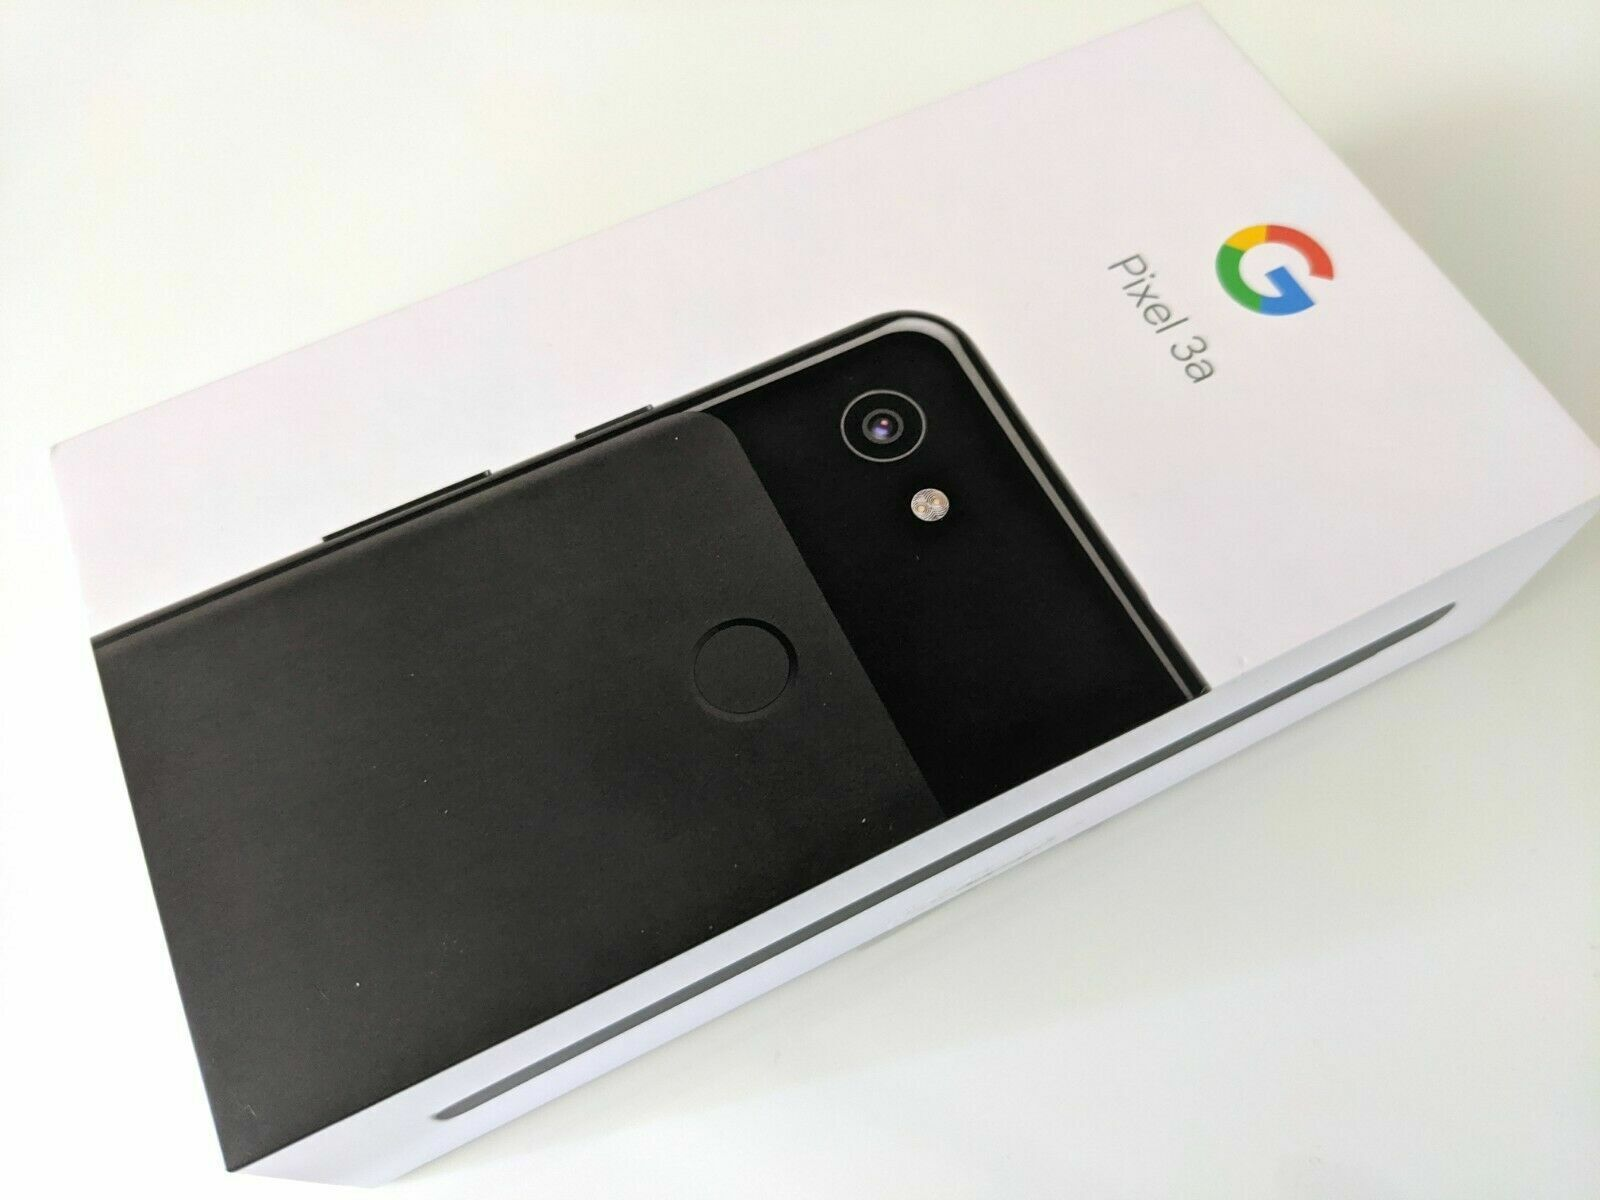 Google Pixel 3a - 64GB - Just Black (Factory Unlocked For ALL Carriers) G020G